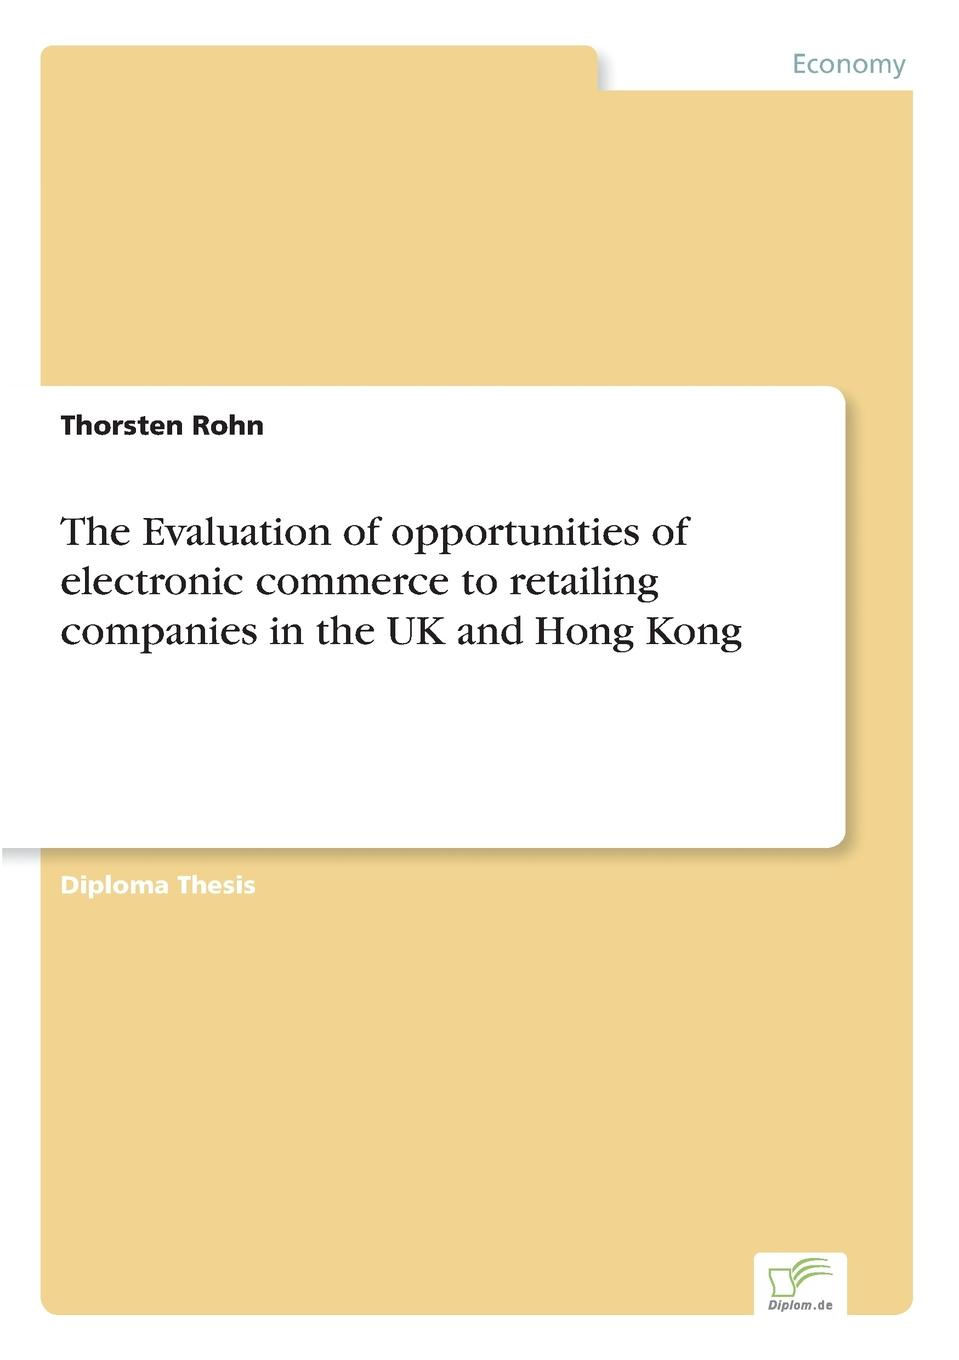 Thorsten Rohn The Evaluation of opportunities of electronic commerce to retailing companies in the UK and Hong Kong leonardo to the internet